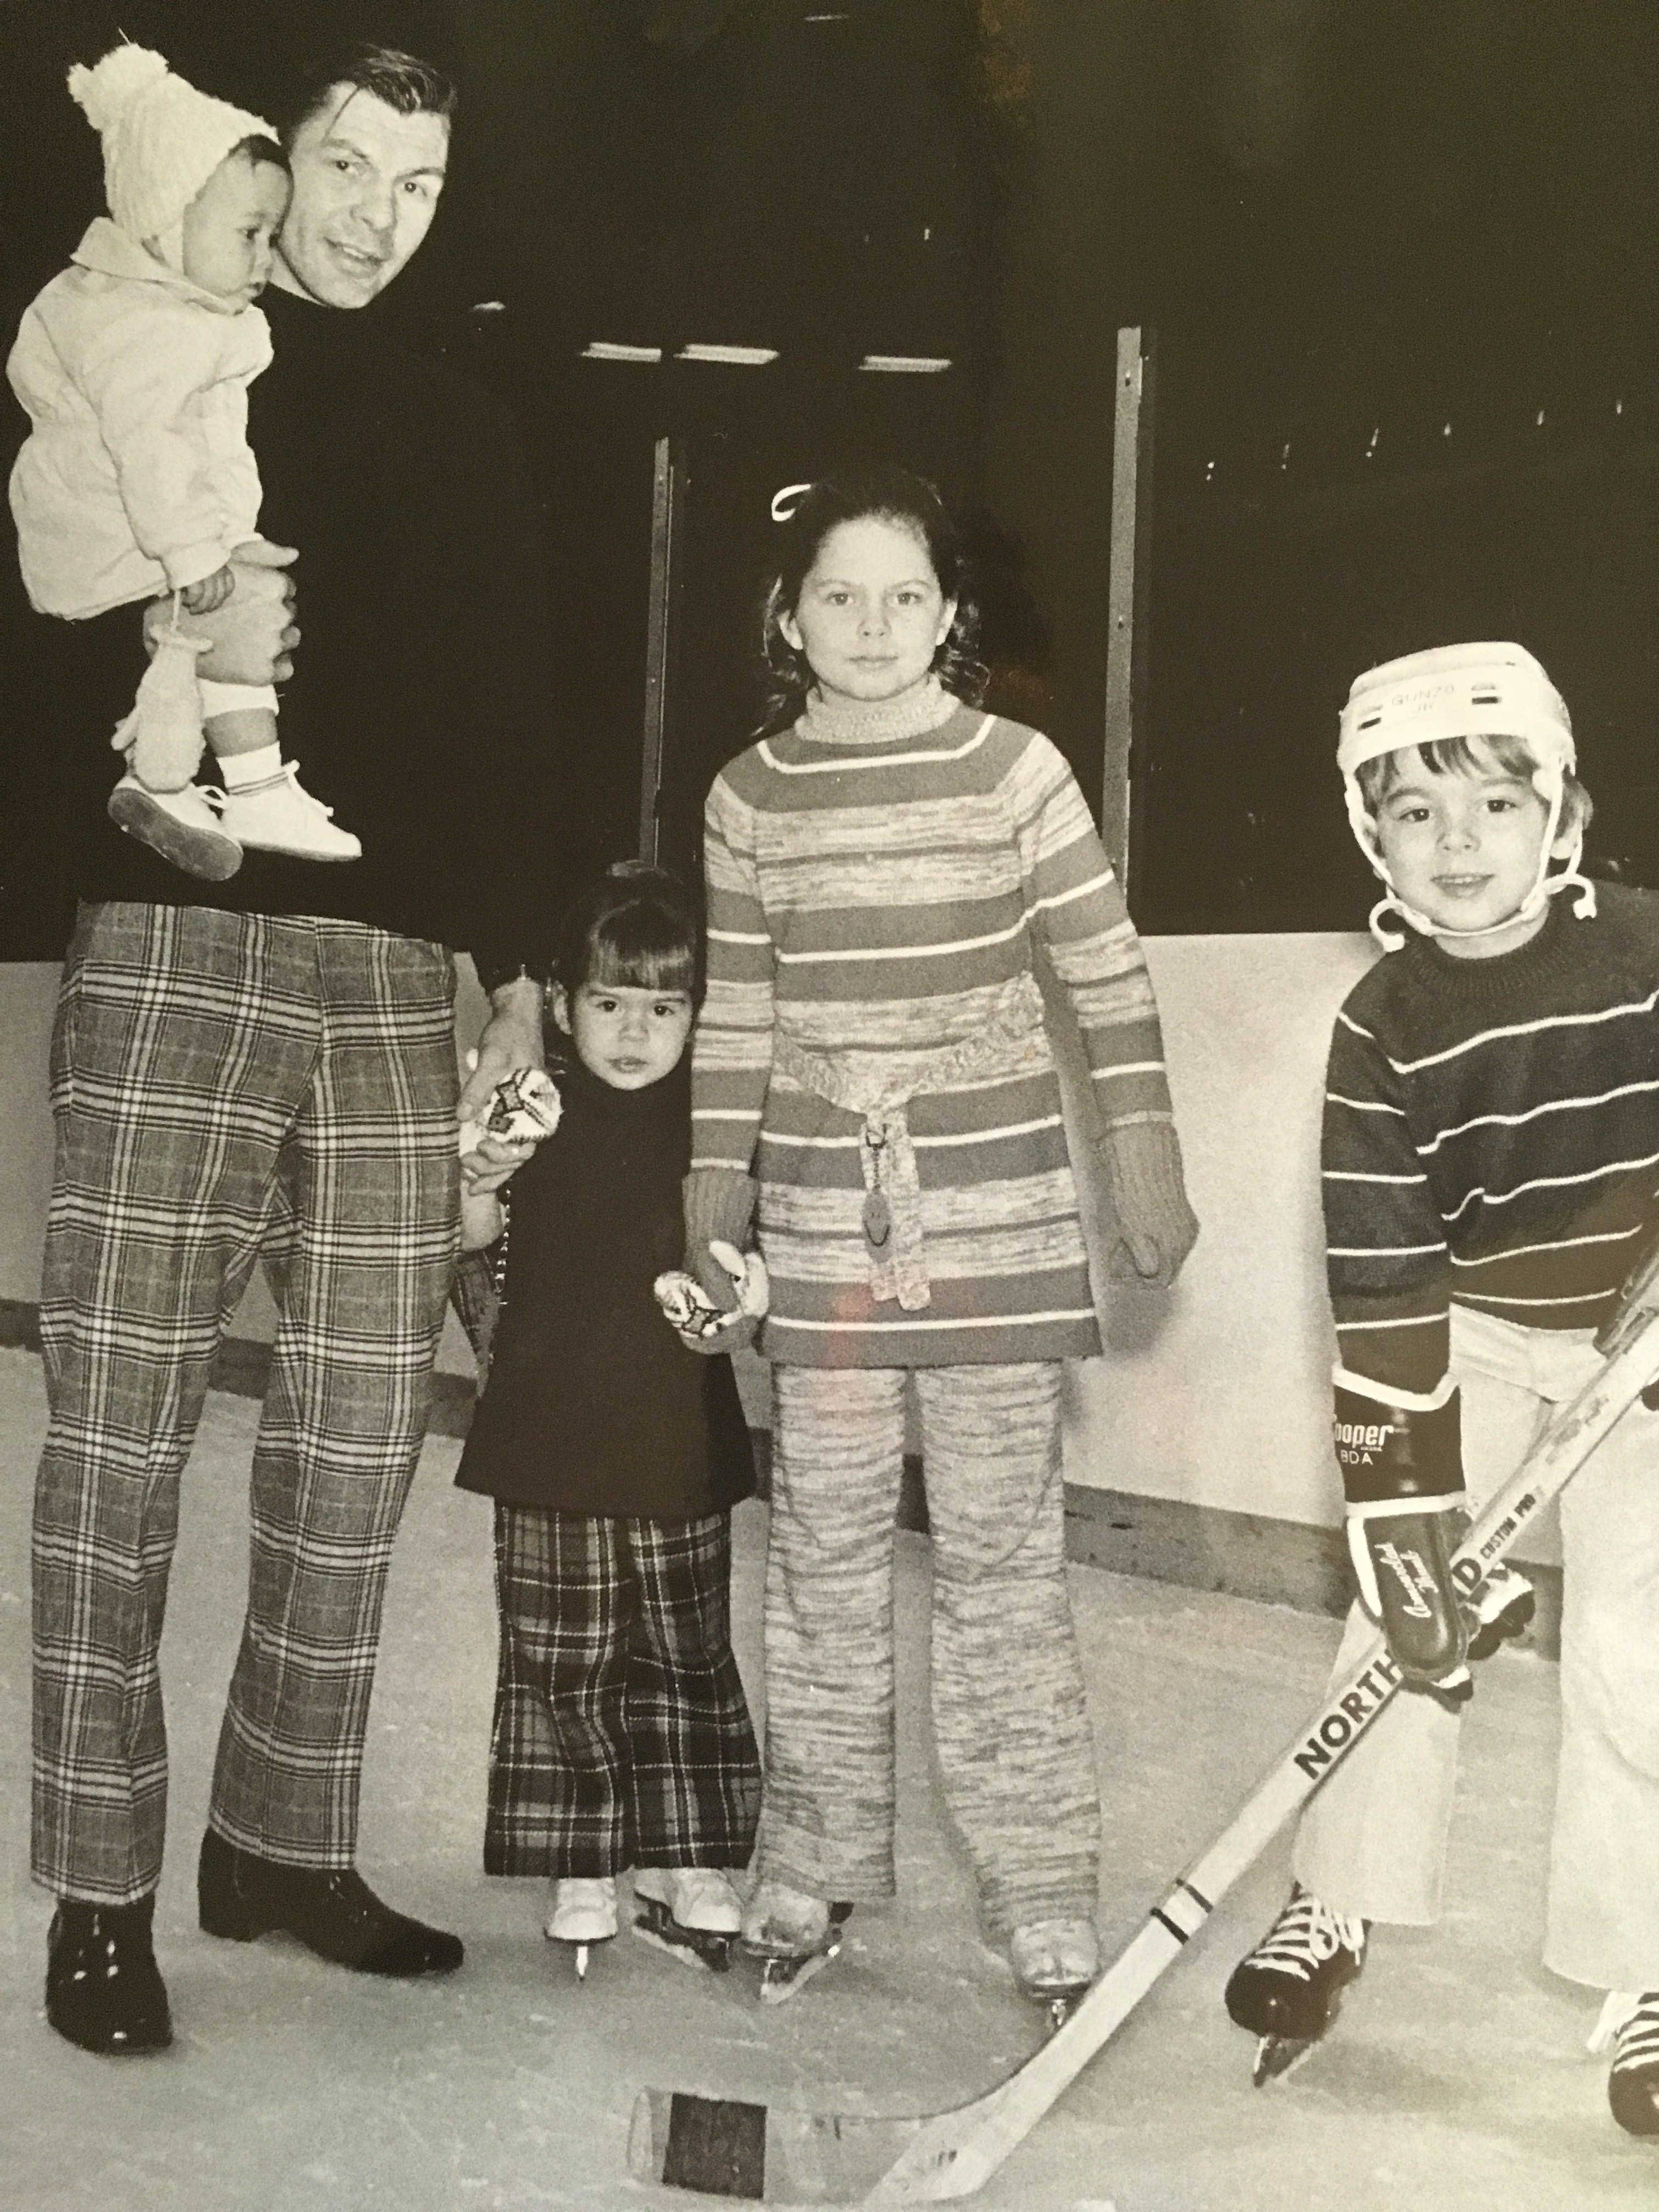 The Mikita children have many memories of enjoying some moments on the ice with their Dad.